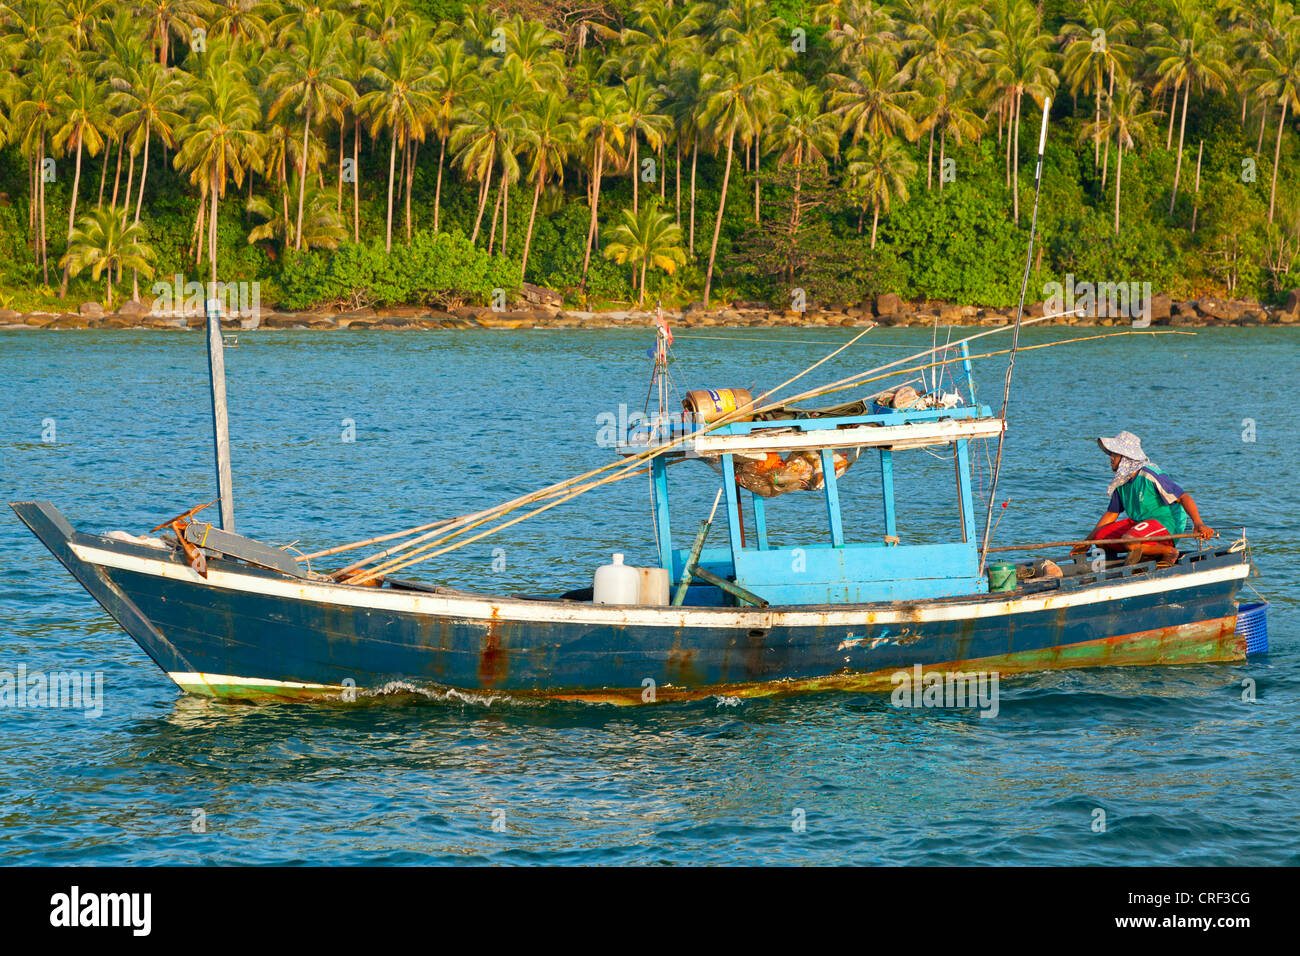 Fishing Off Of The Coast Of A Tropical Island Stock Image